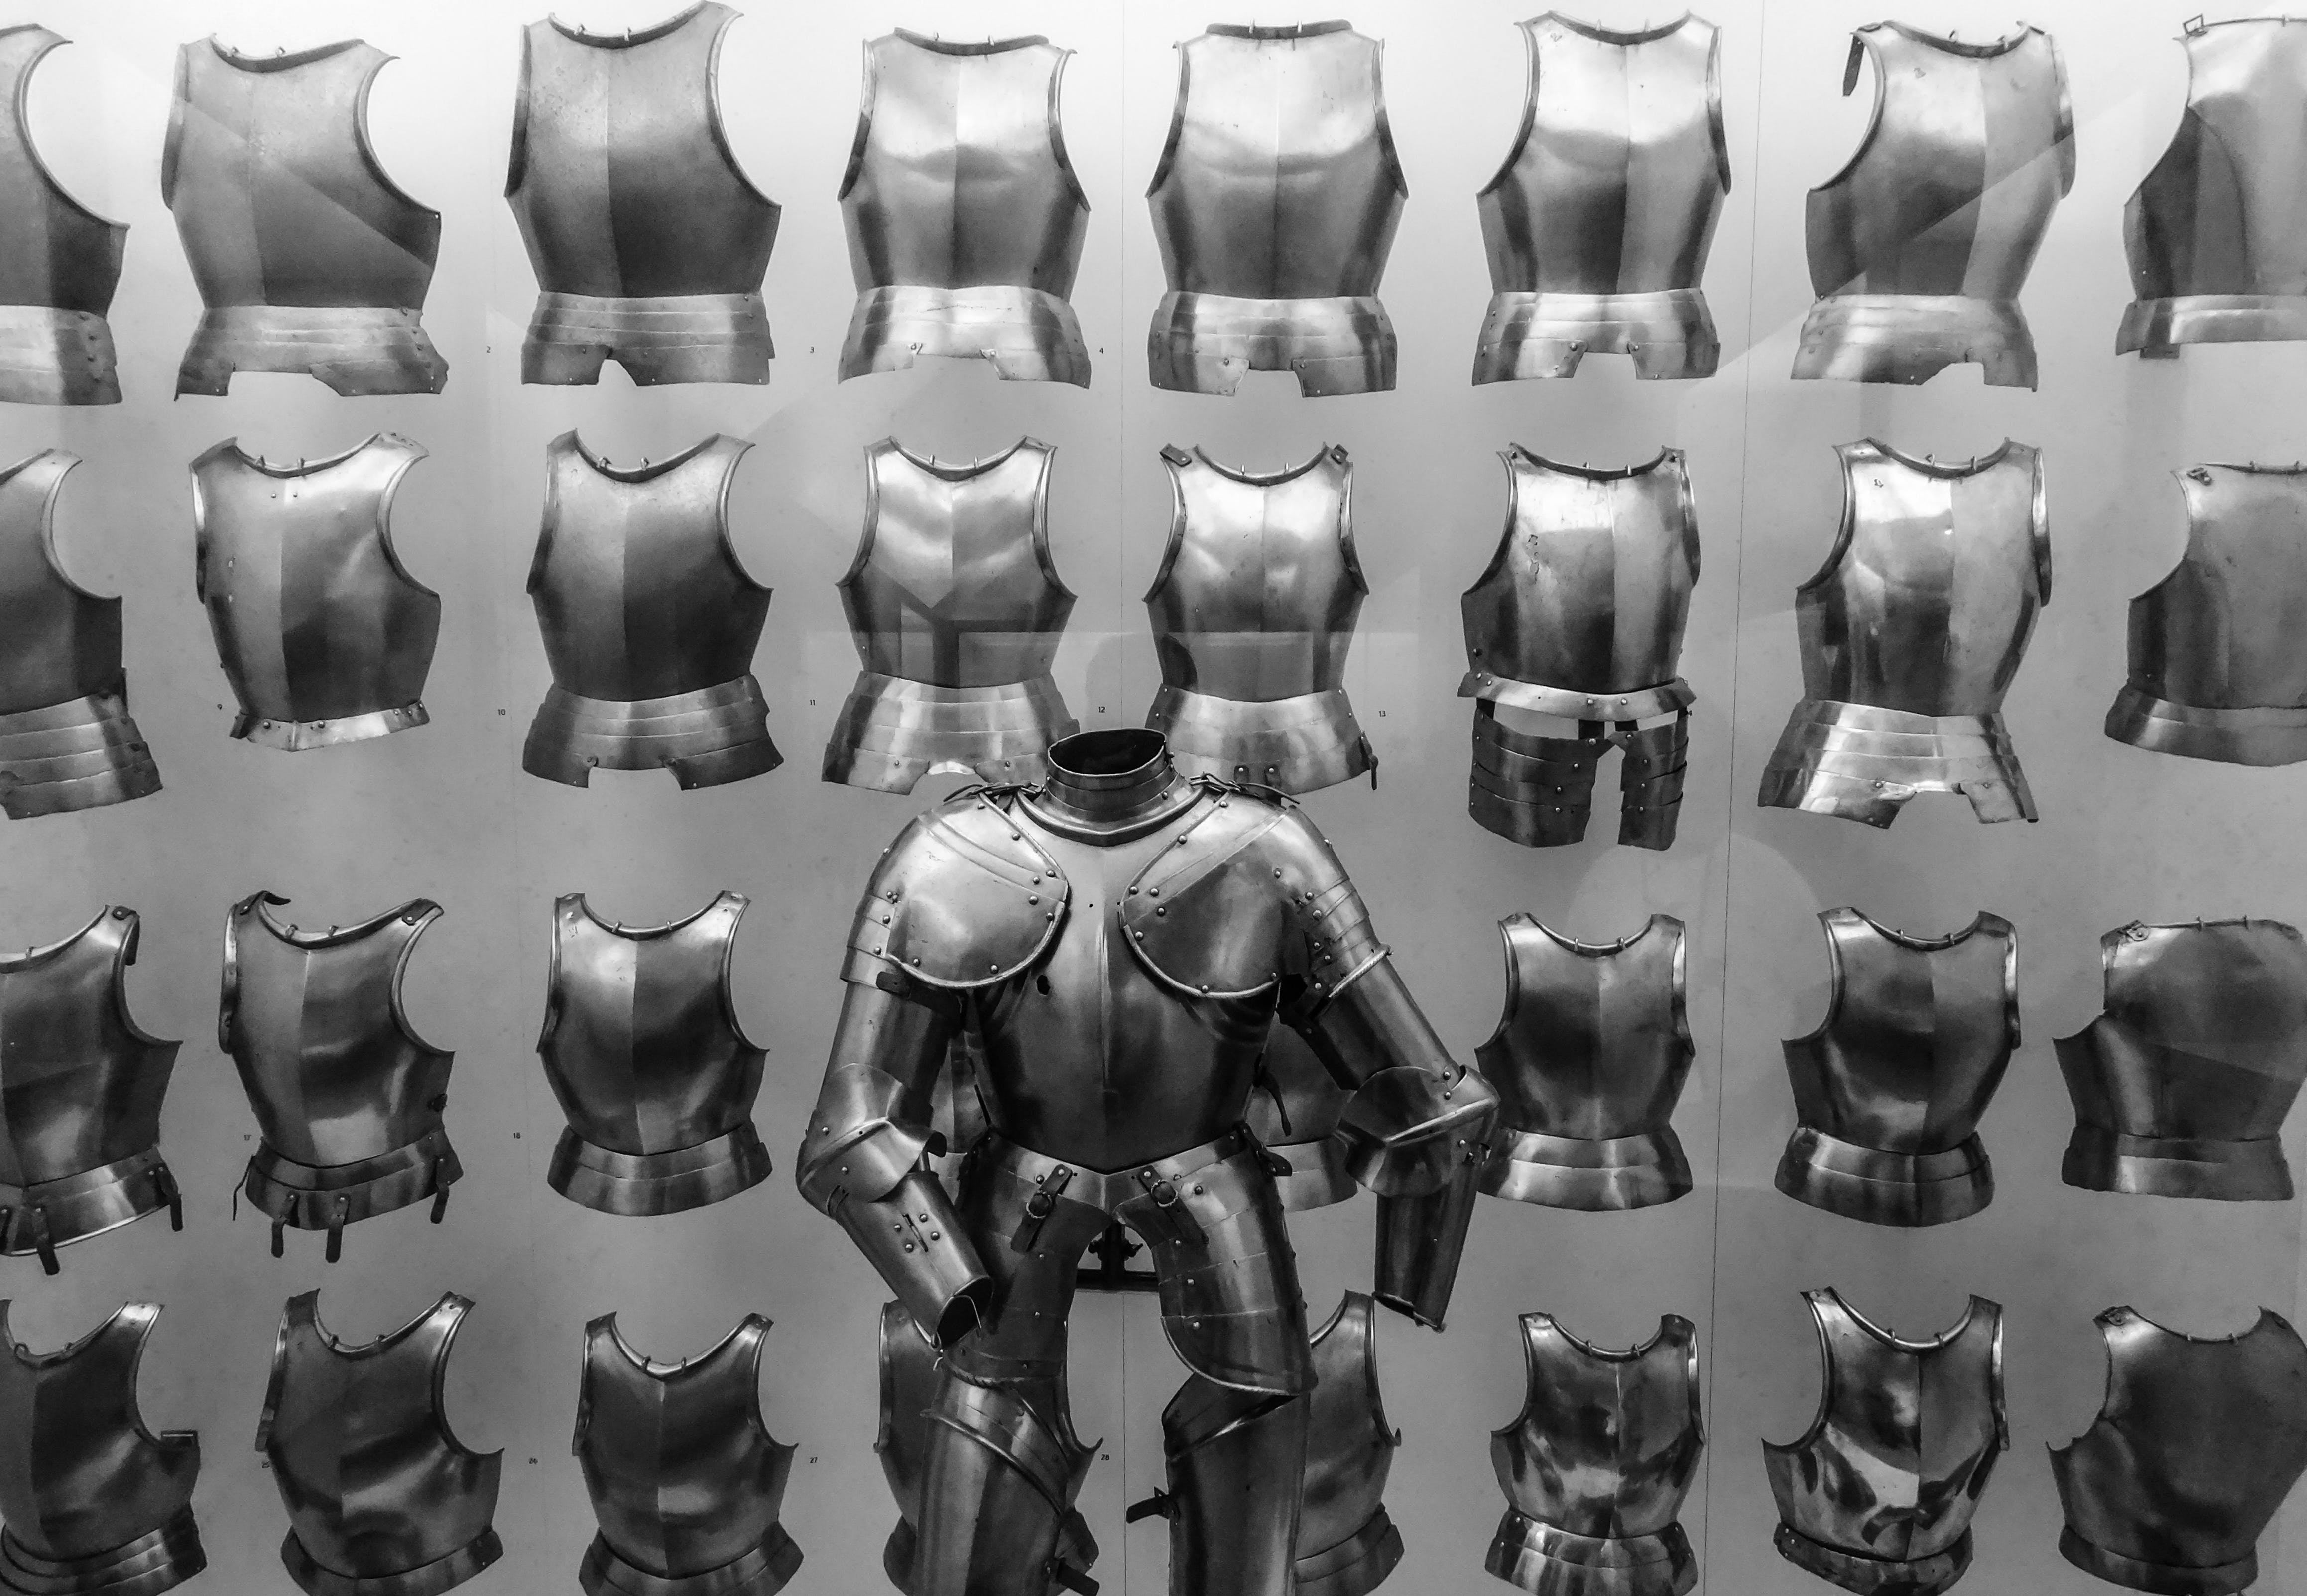 Stainless Steel Armor